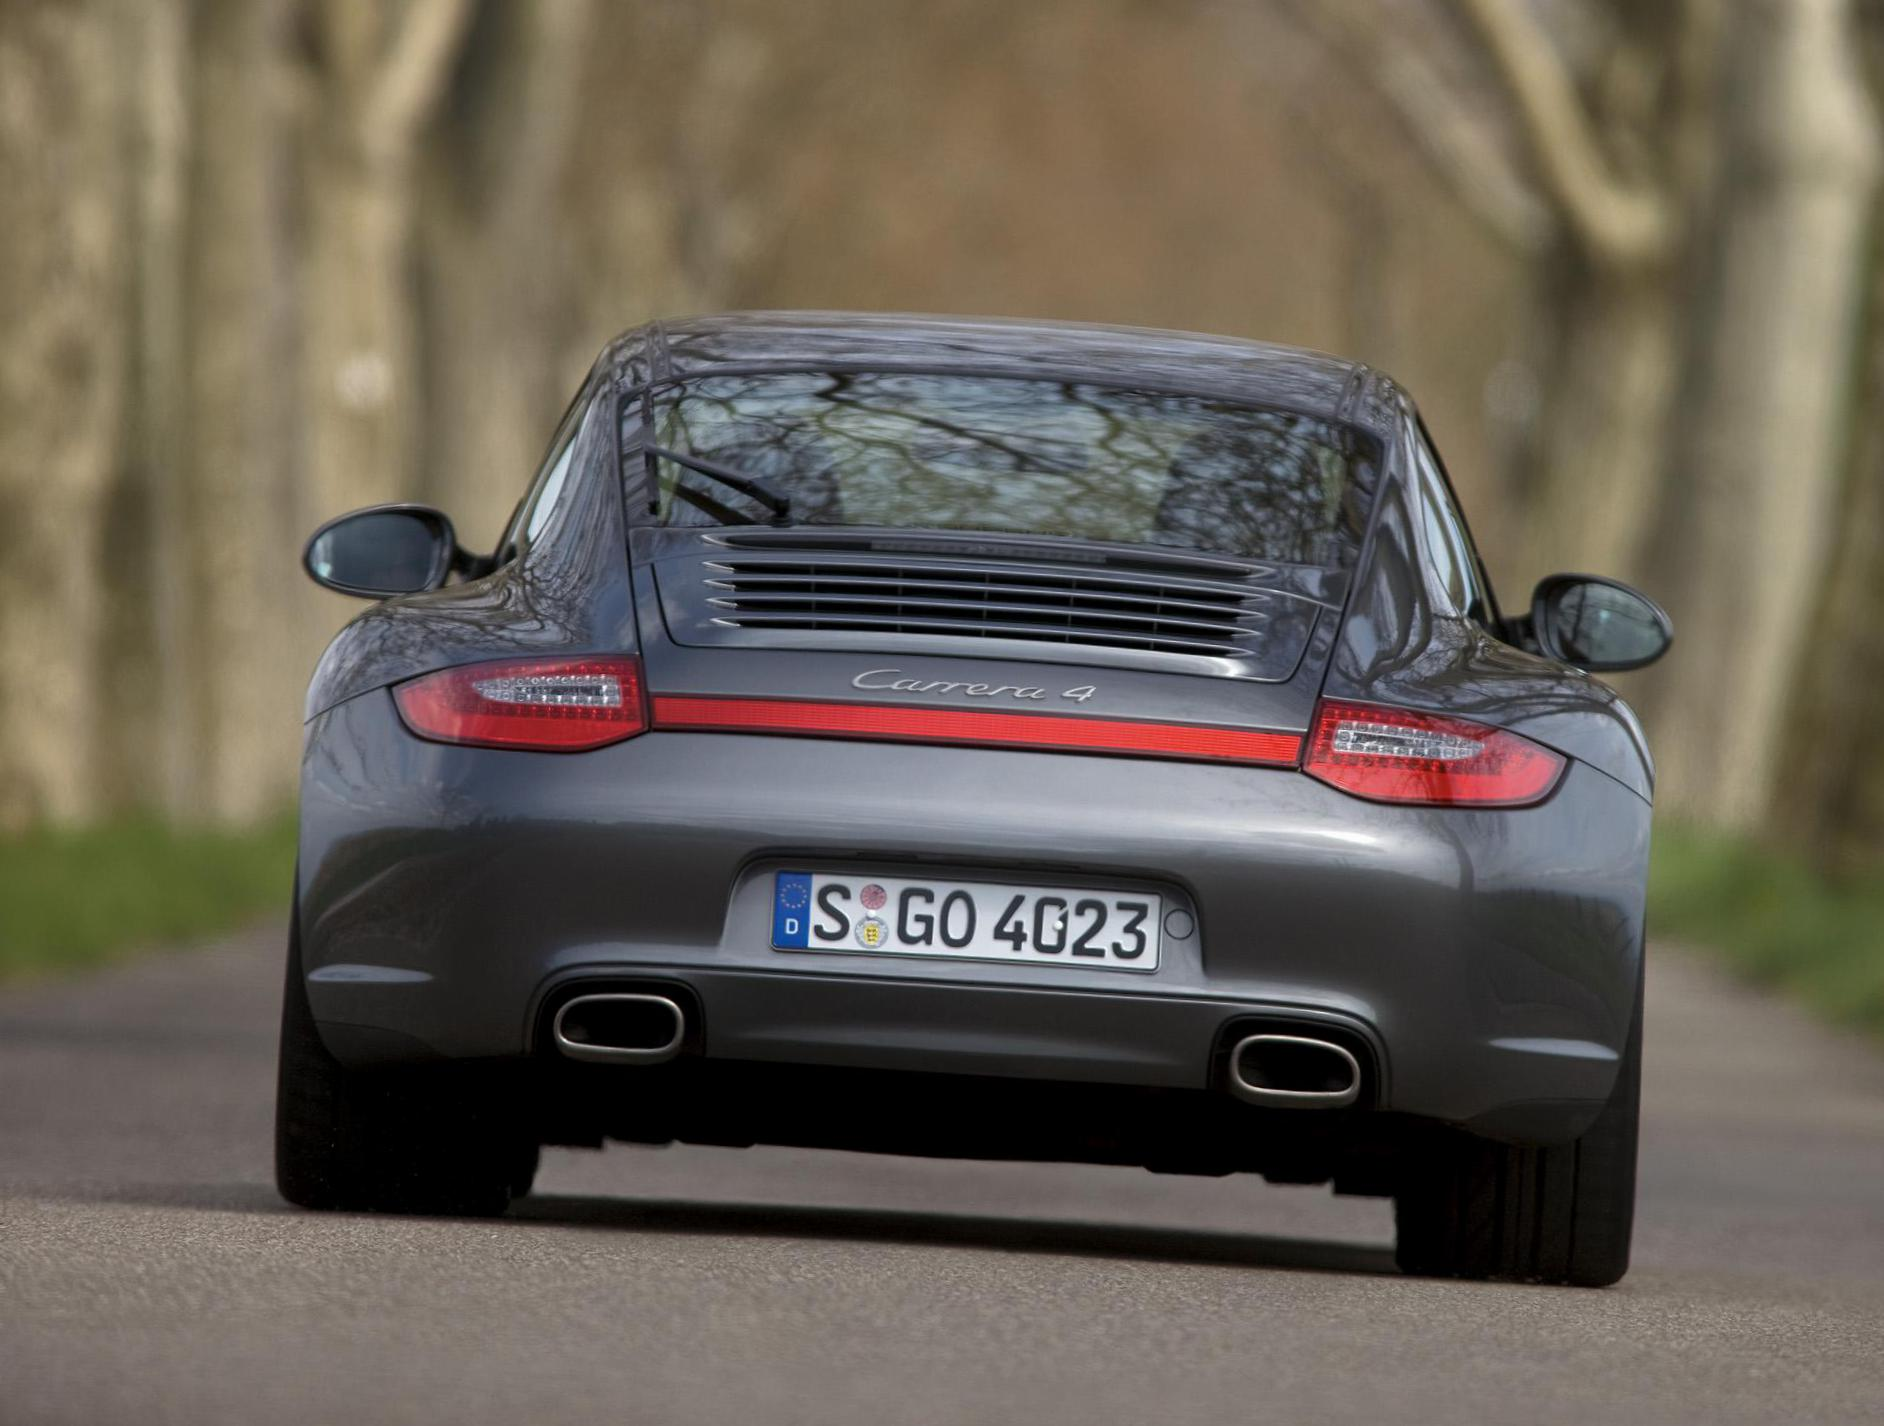 911 Carrera Porsche models hatchback